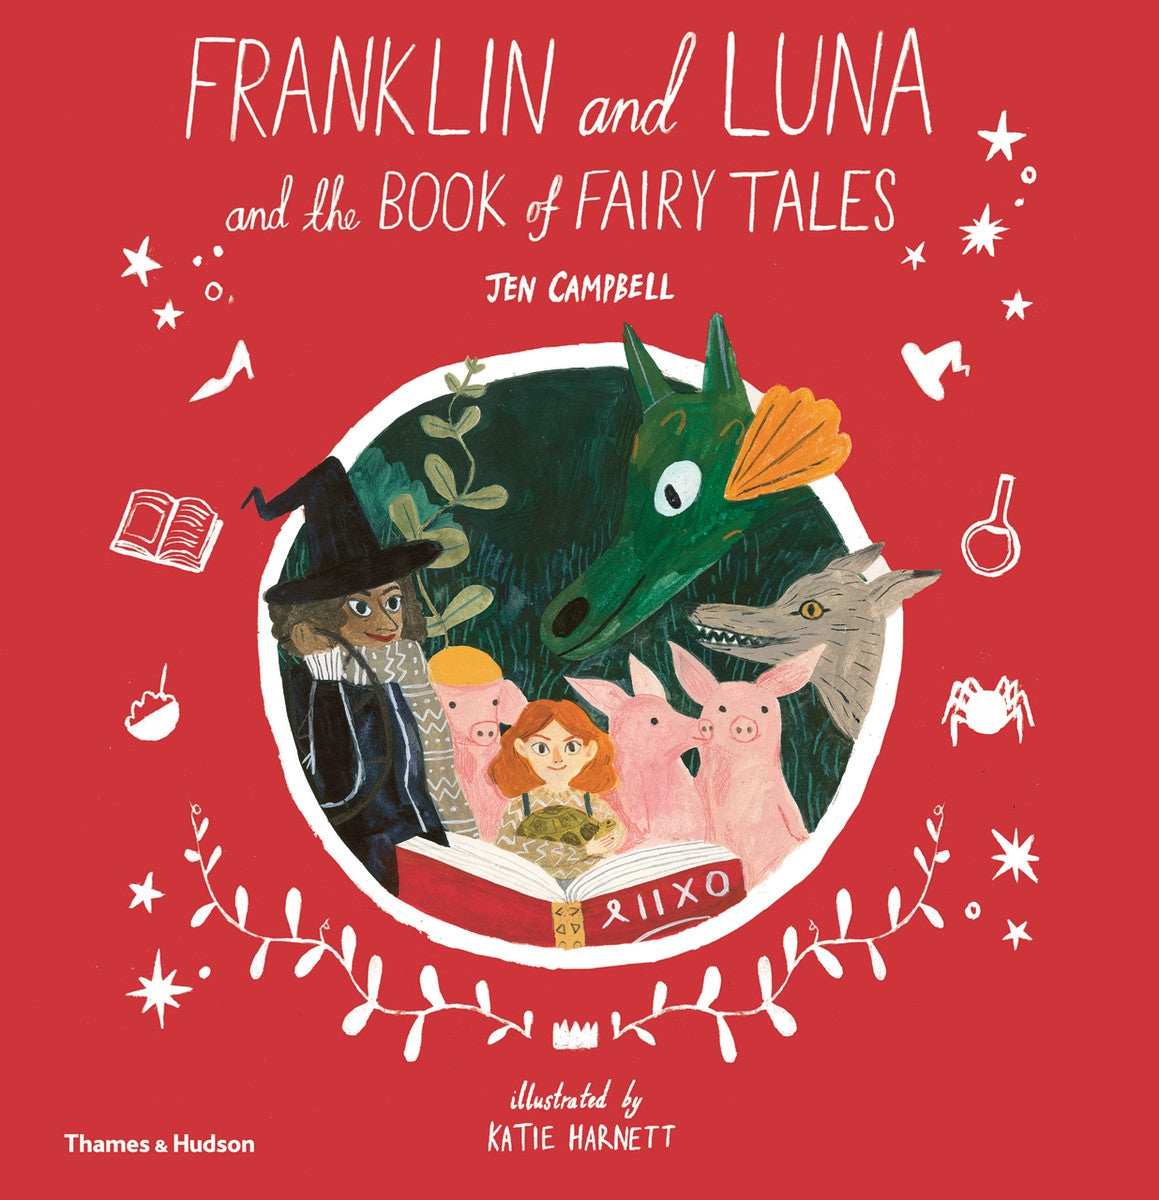 Franklin and Luna and the Book of Fairy Tales by Jen Campbell and Katie Harnett